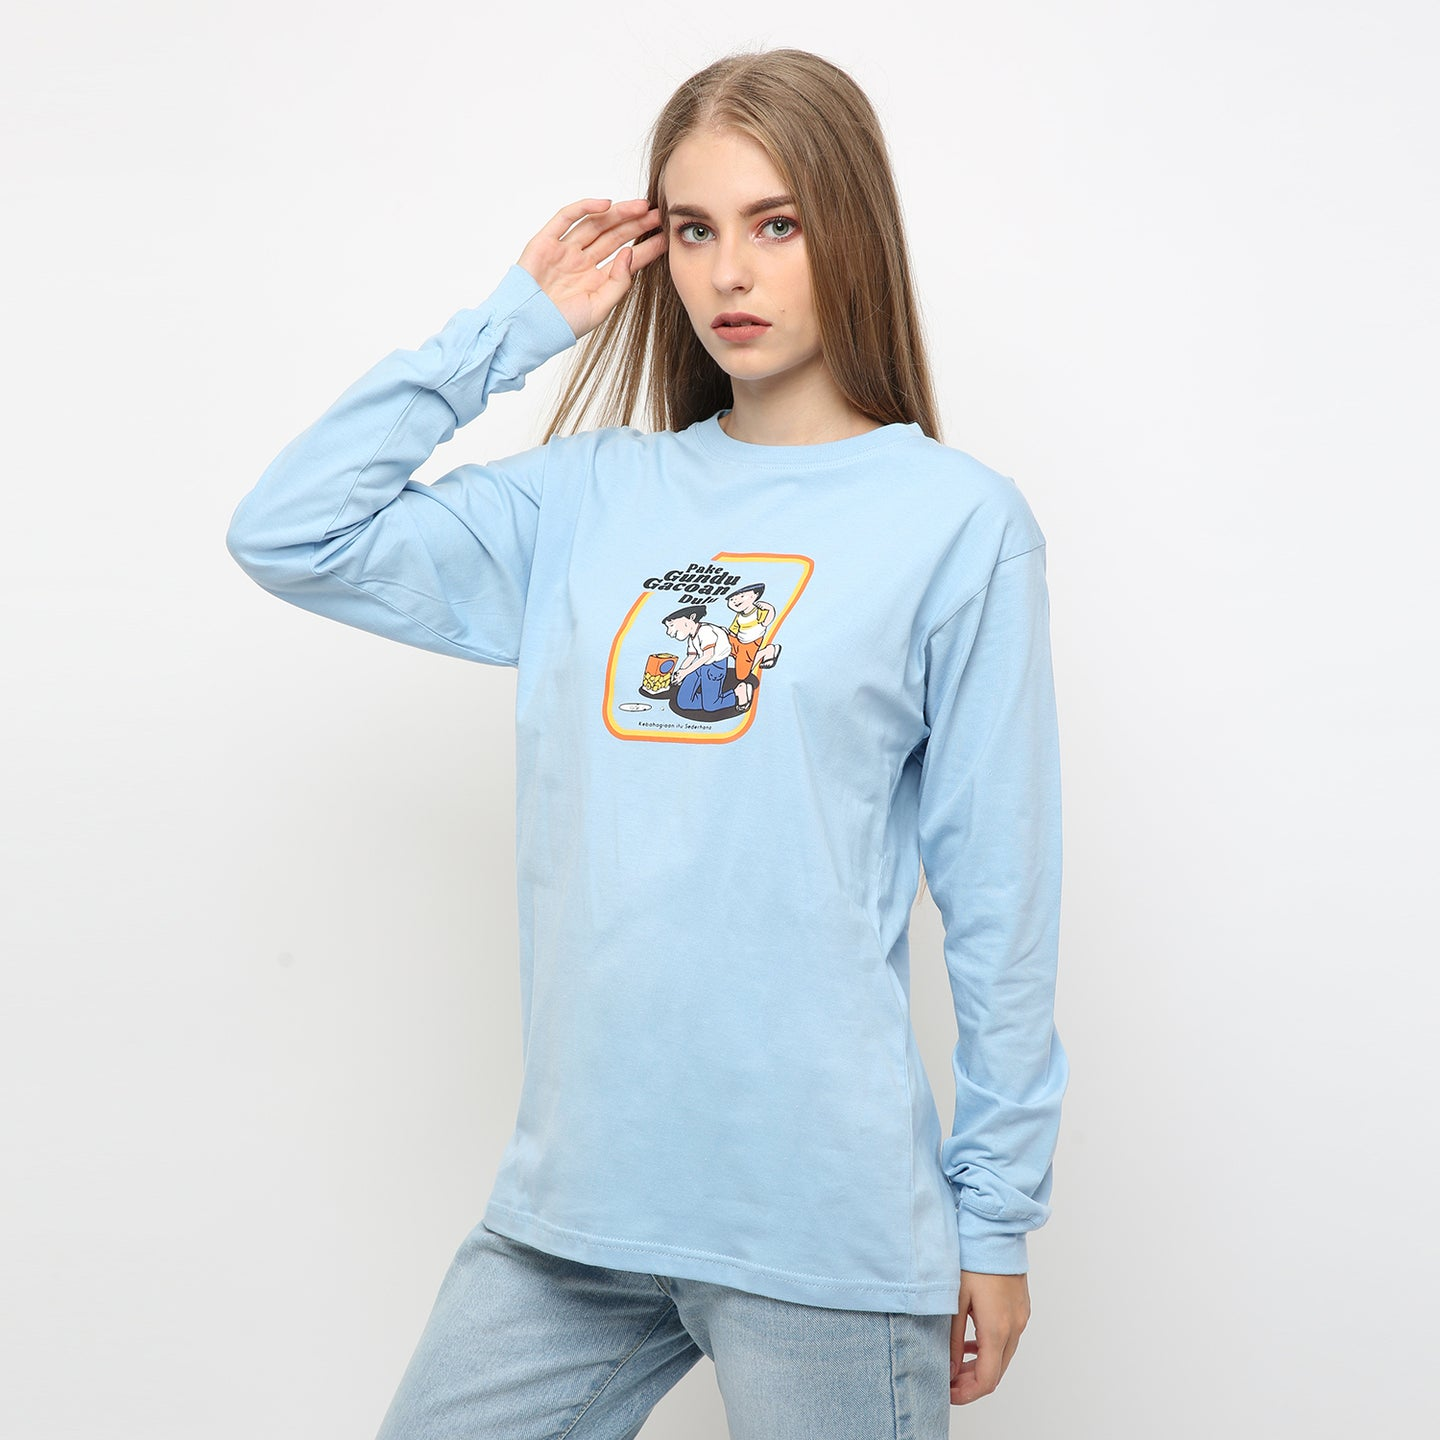 T-shirt Gundu Long Sleeve Baby Blue